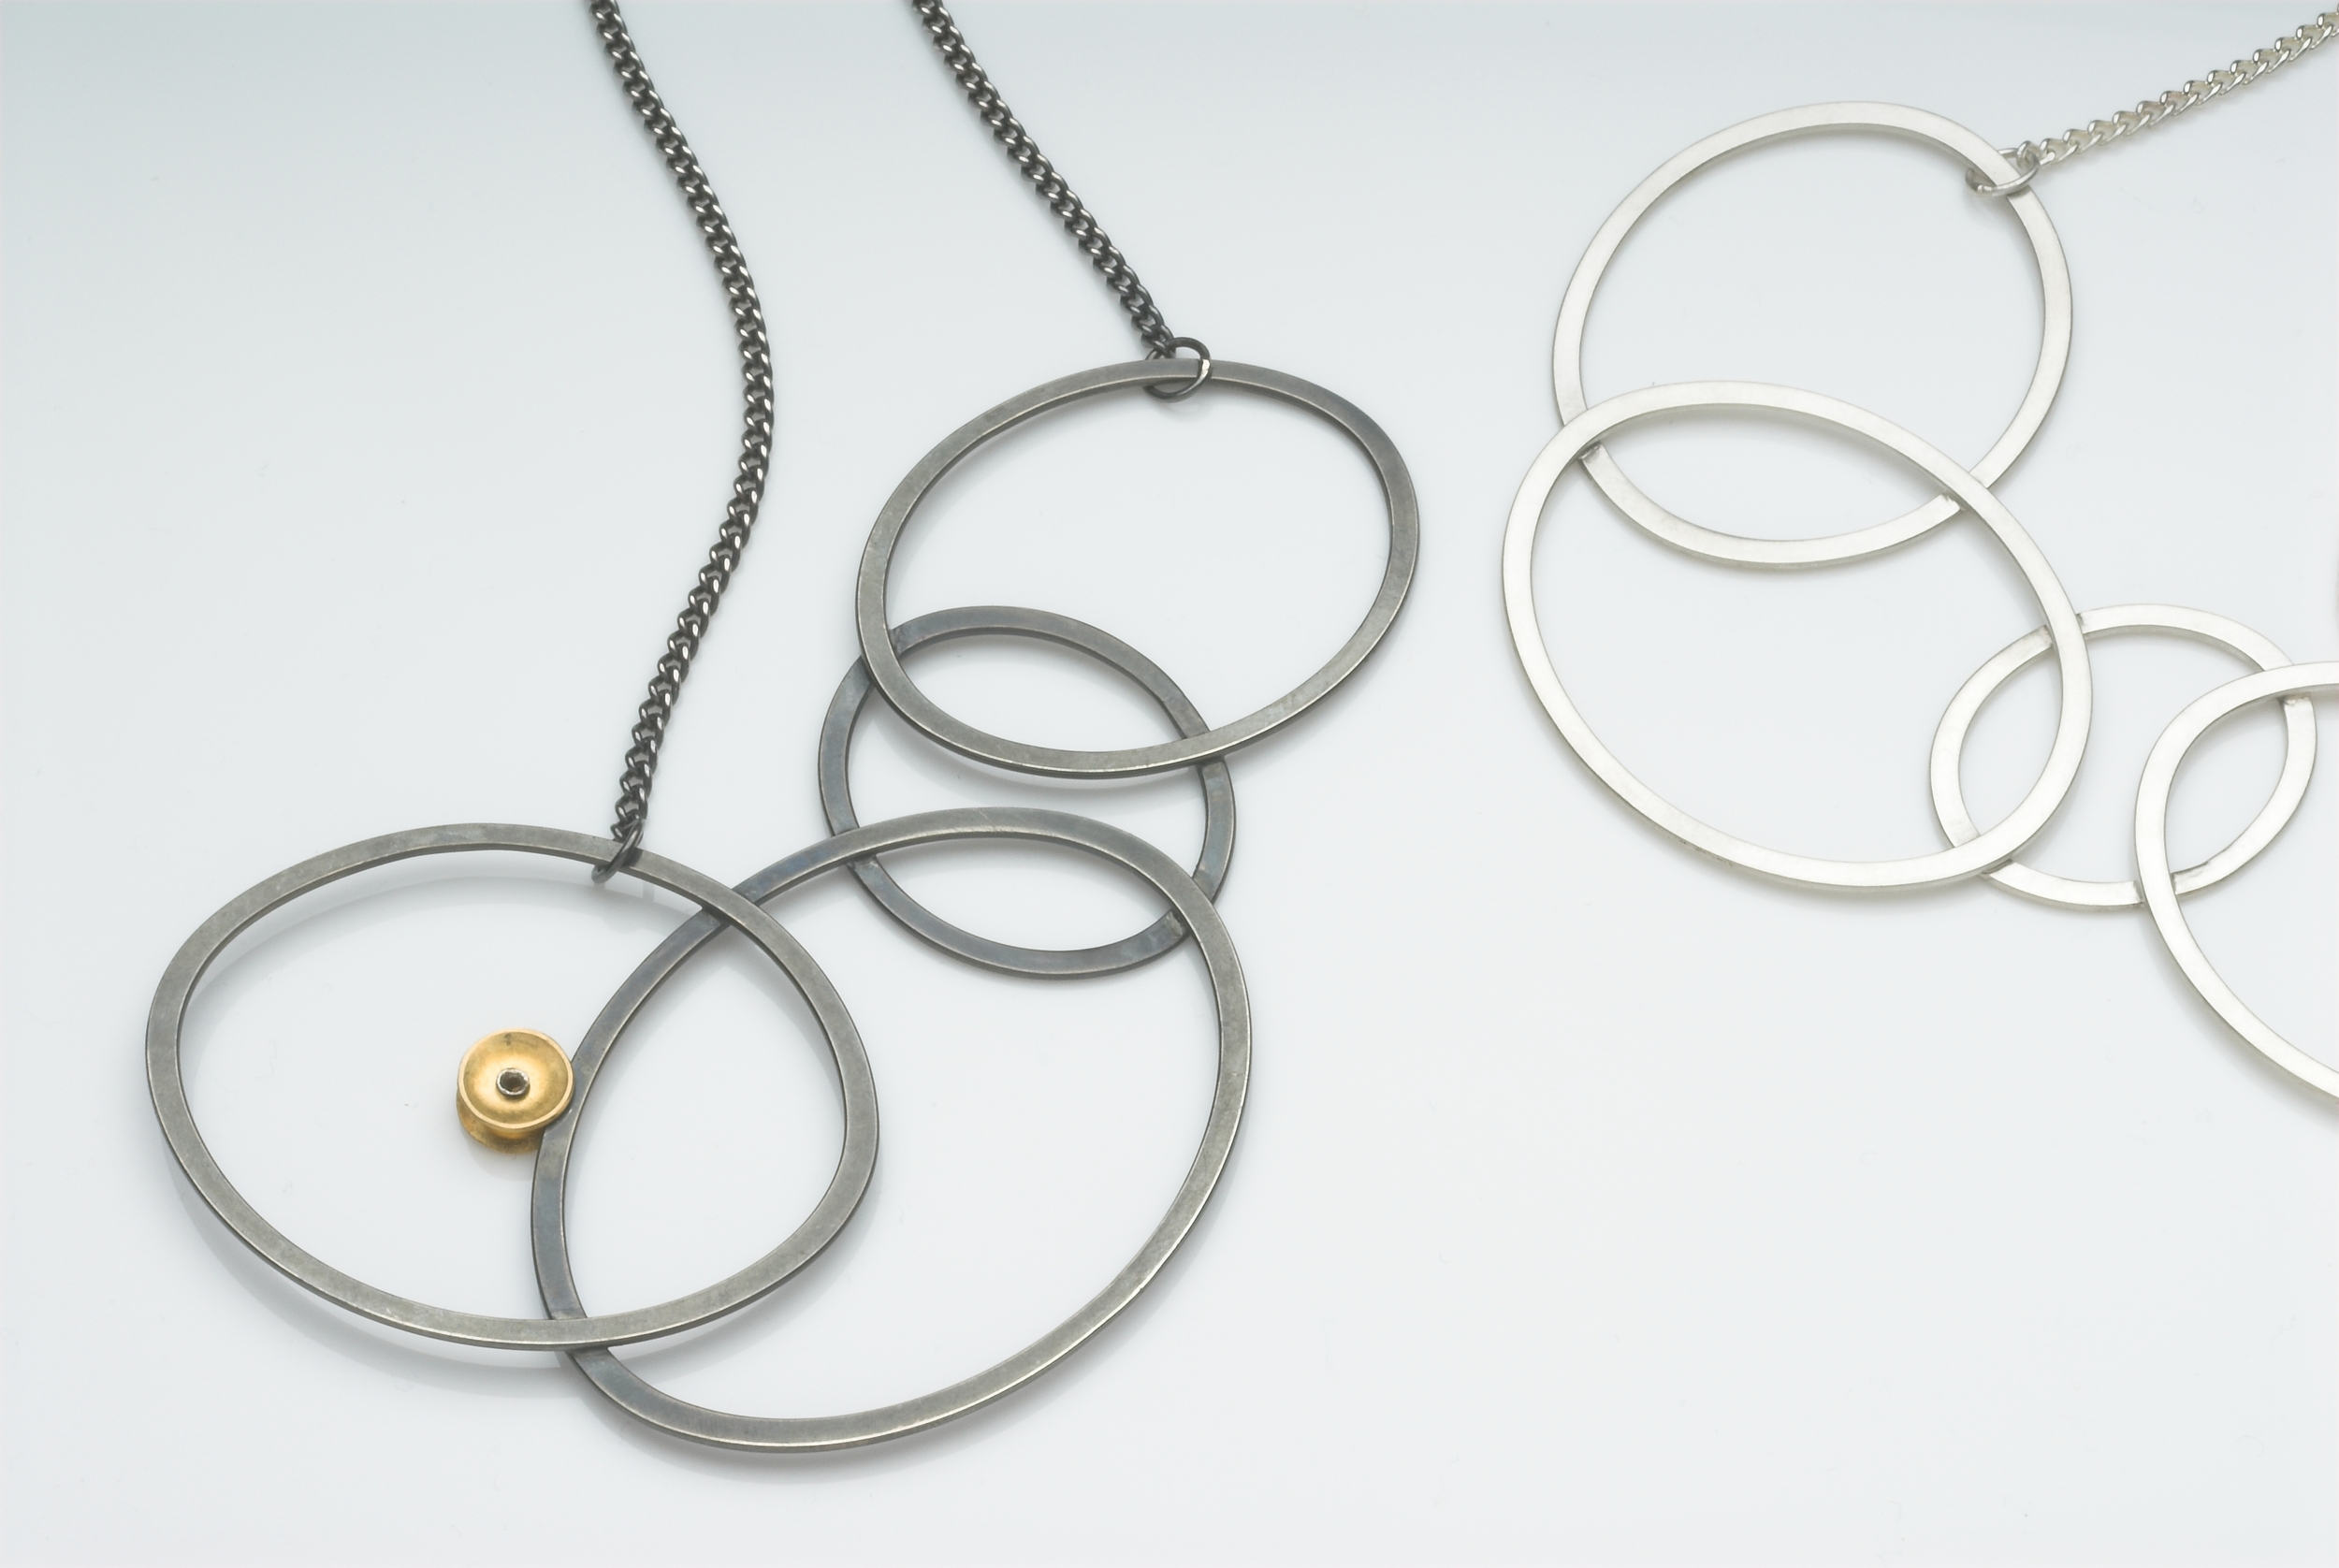 Silver,oxidised silver and gold plate necklaces £280-£320